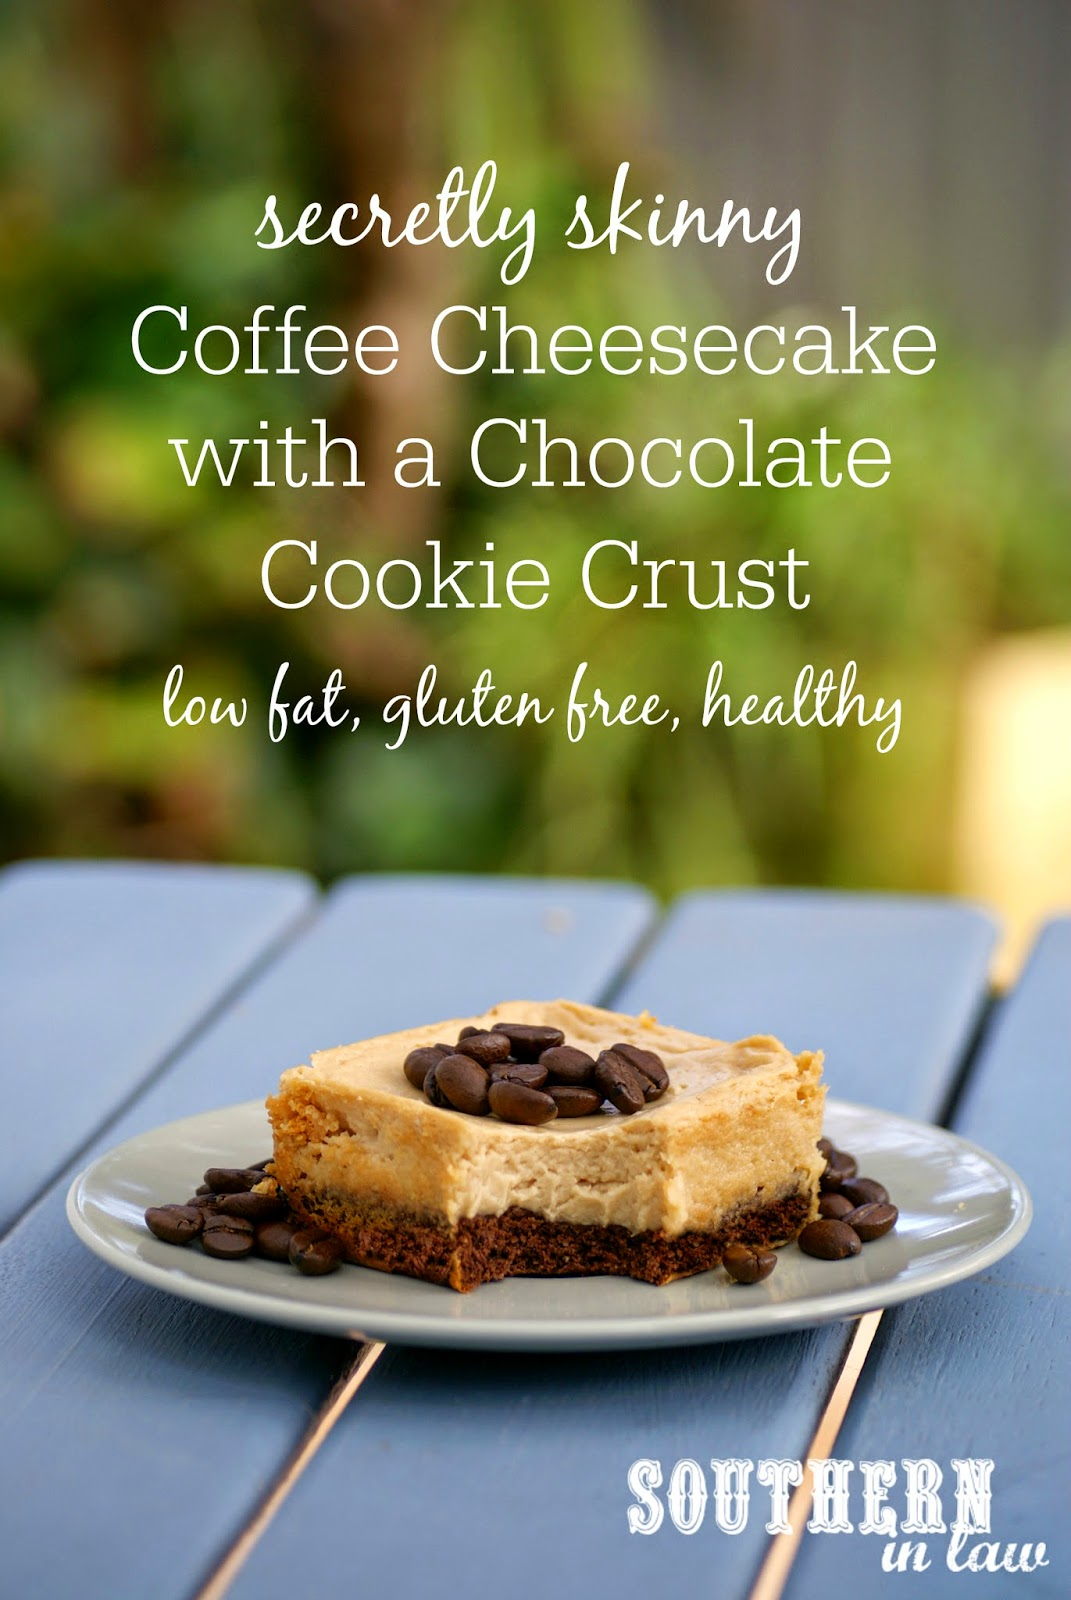 Secretly Skinny Coffee Cheesecake Recipe with a Chocolate Cookie Crust - low fat, gluten free, low sugar, high protein